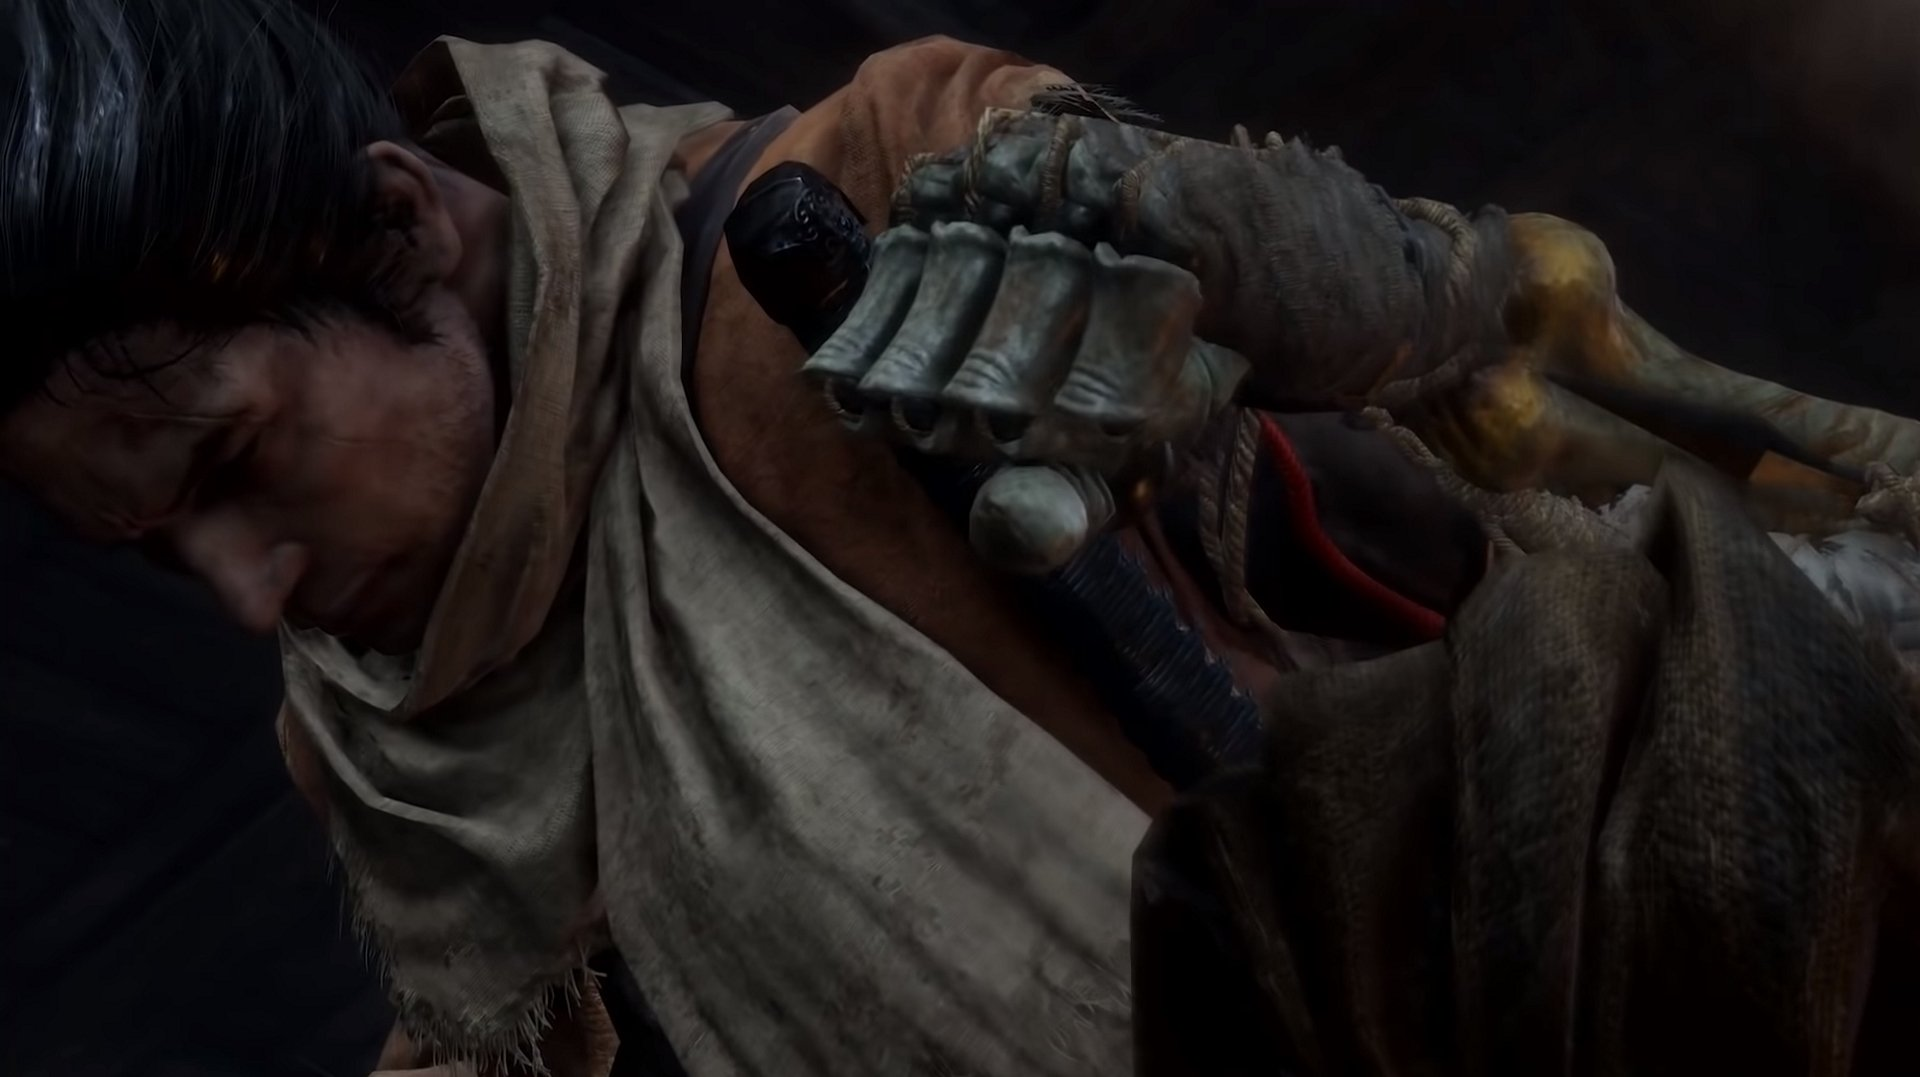 all Shinobi prosthetic tool locations in Sekiro: Shadows Die Twice